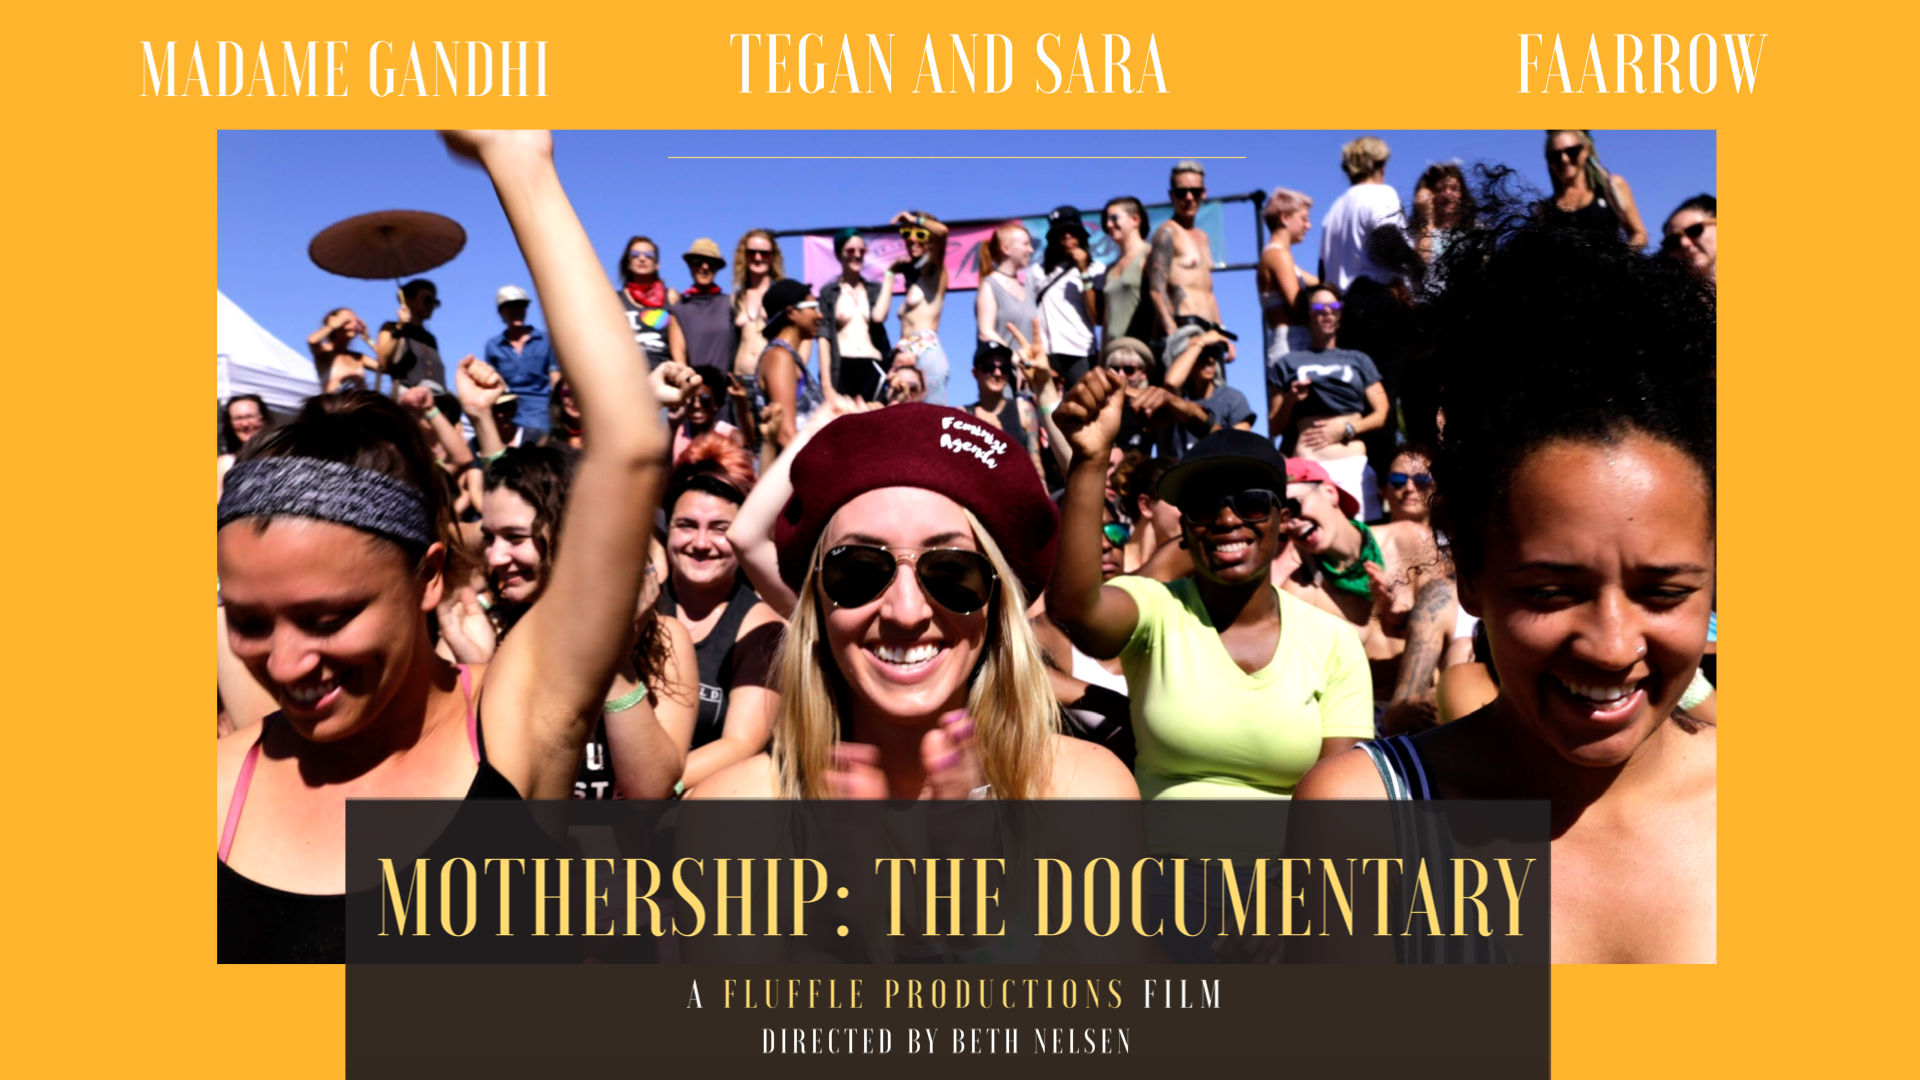 MOTHERSHIP, the documentary